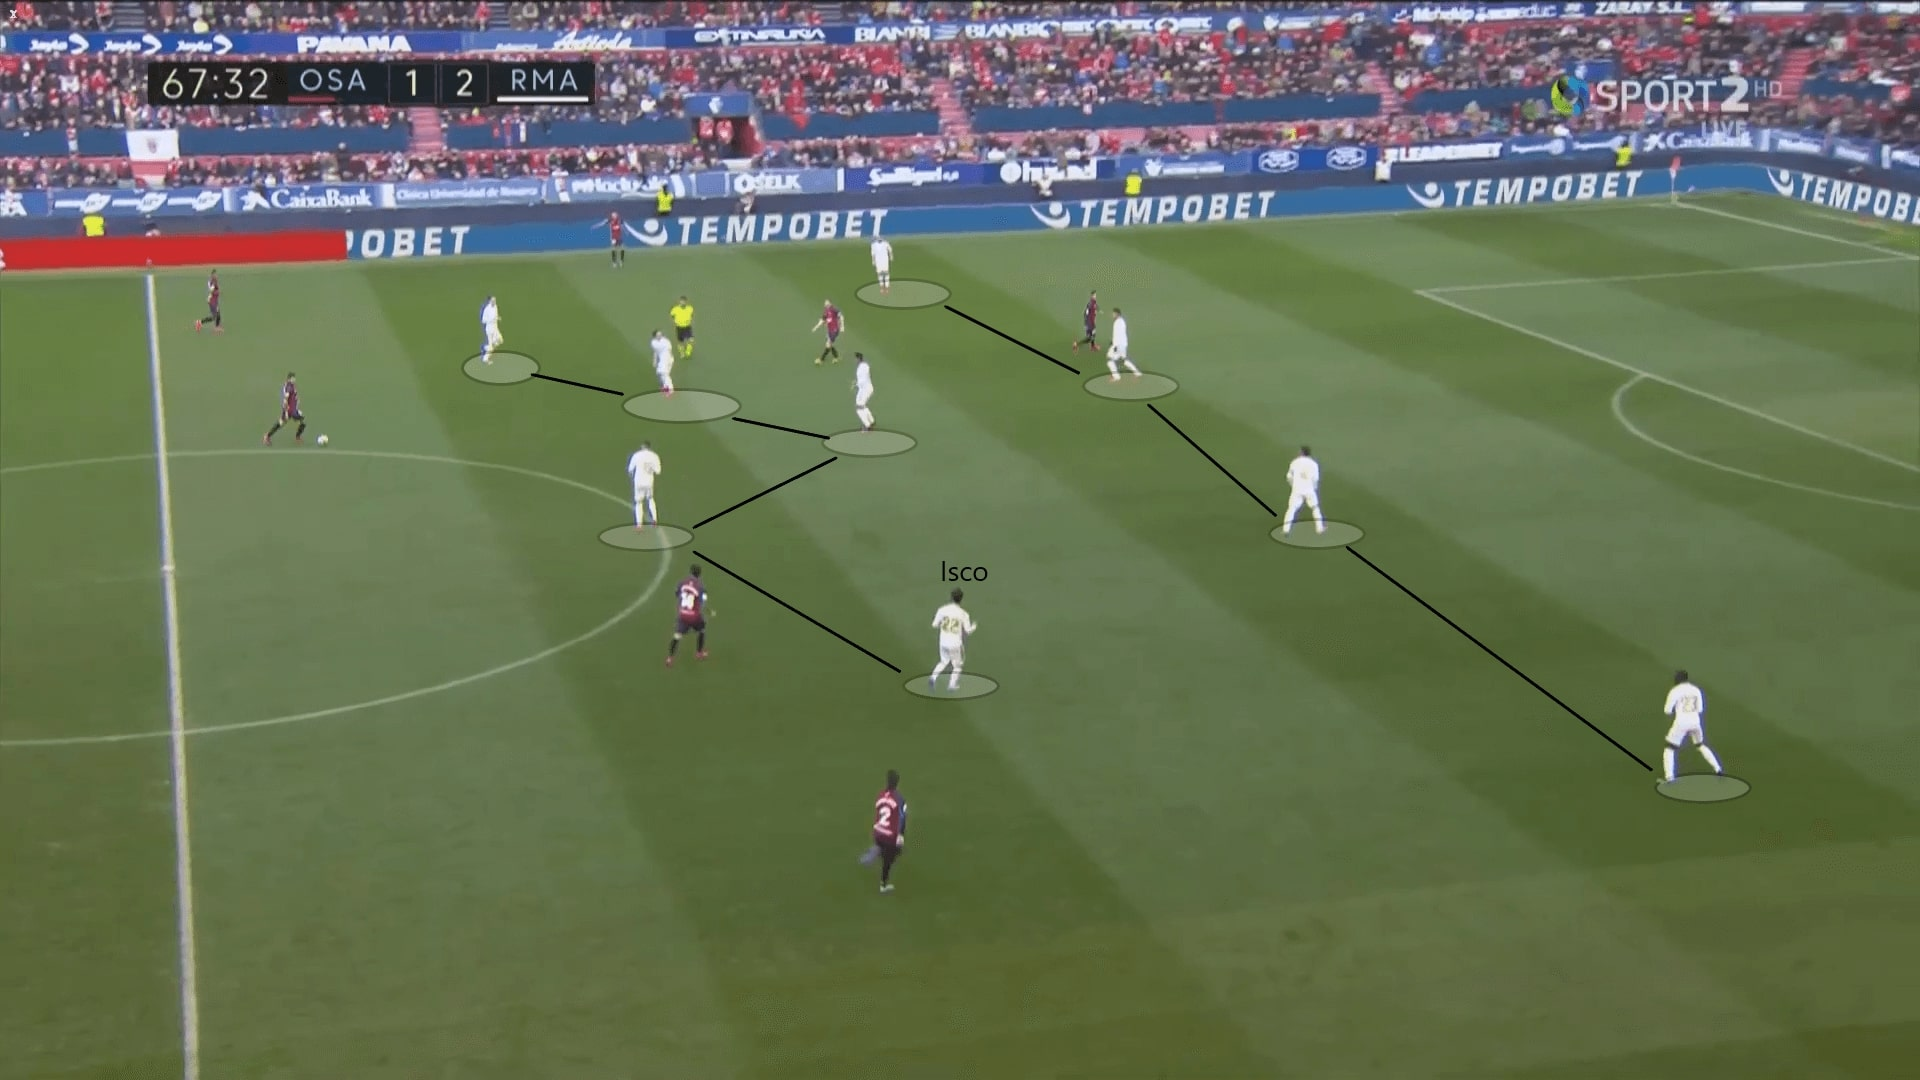 La Liga 2019/20: Osasuna vs Real Madrid - tactical analysis tactics